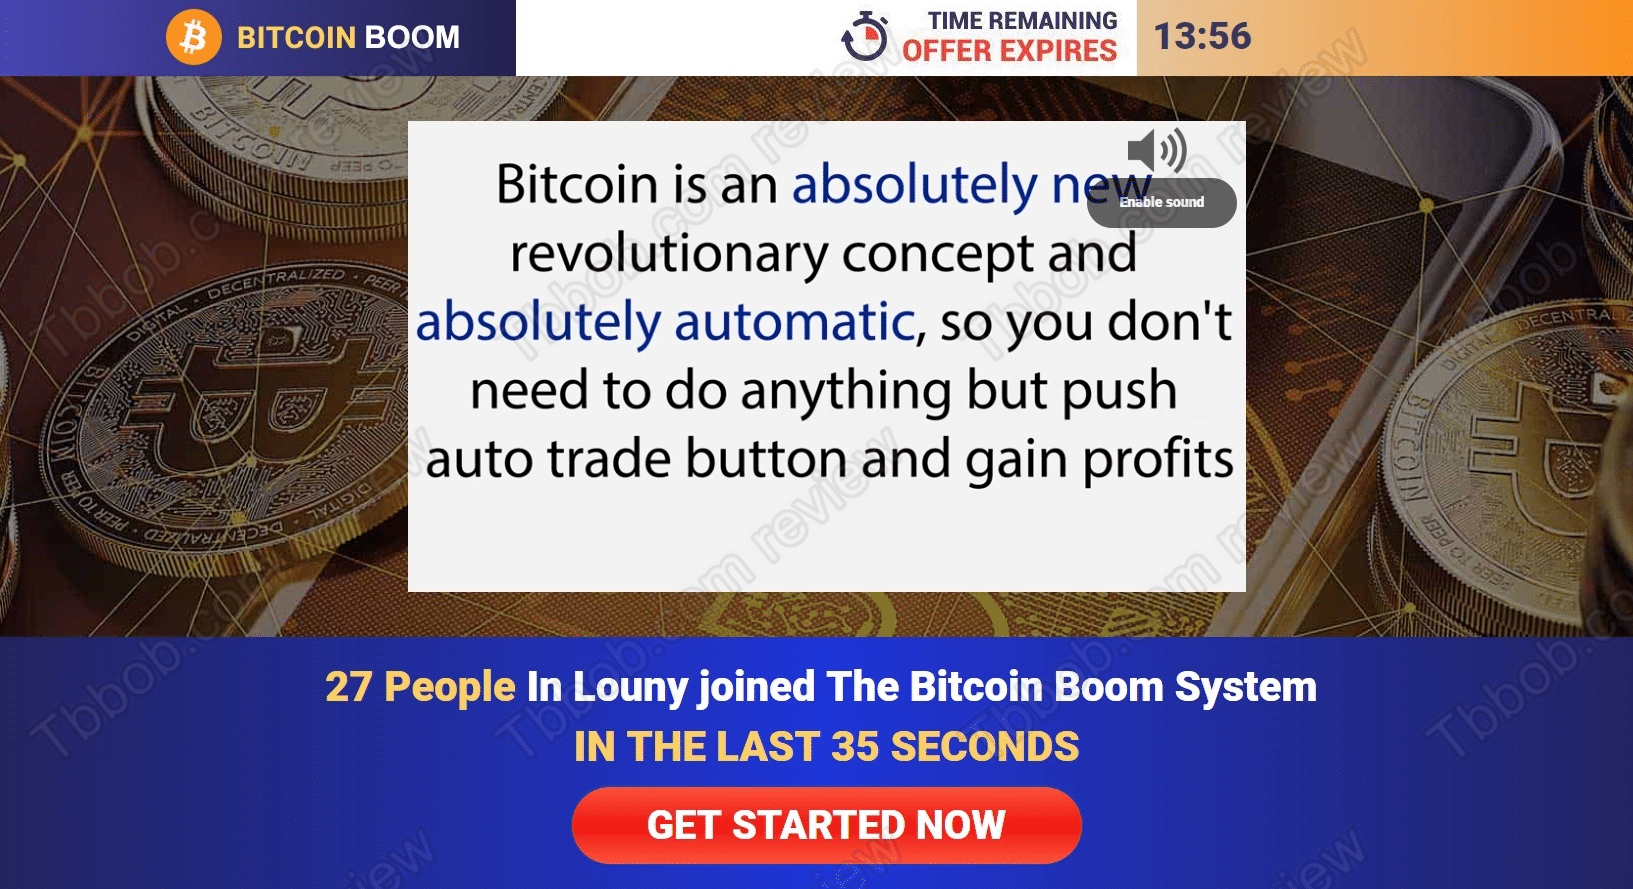 Bitcoin Boom Image of this product